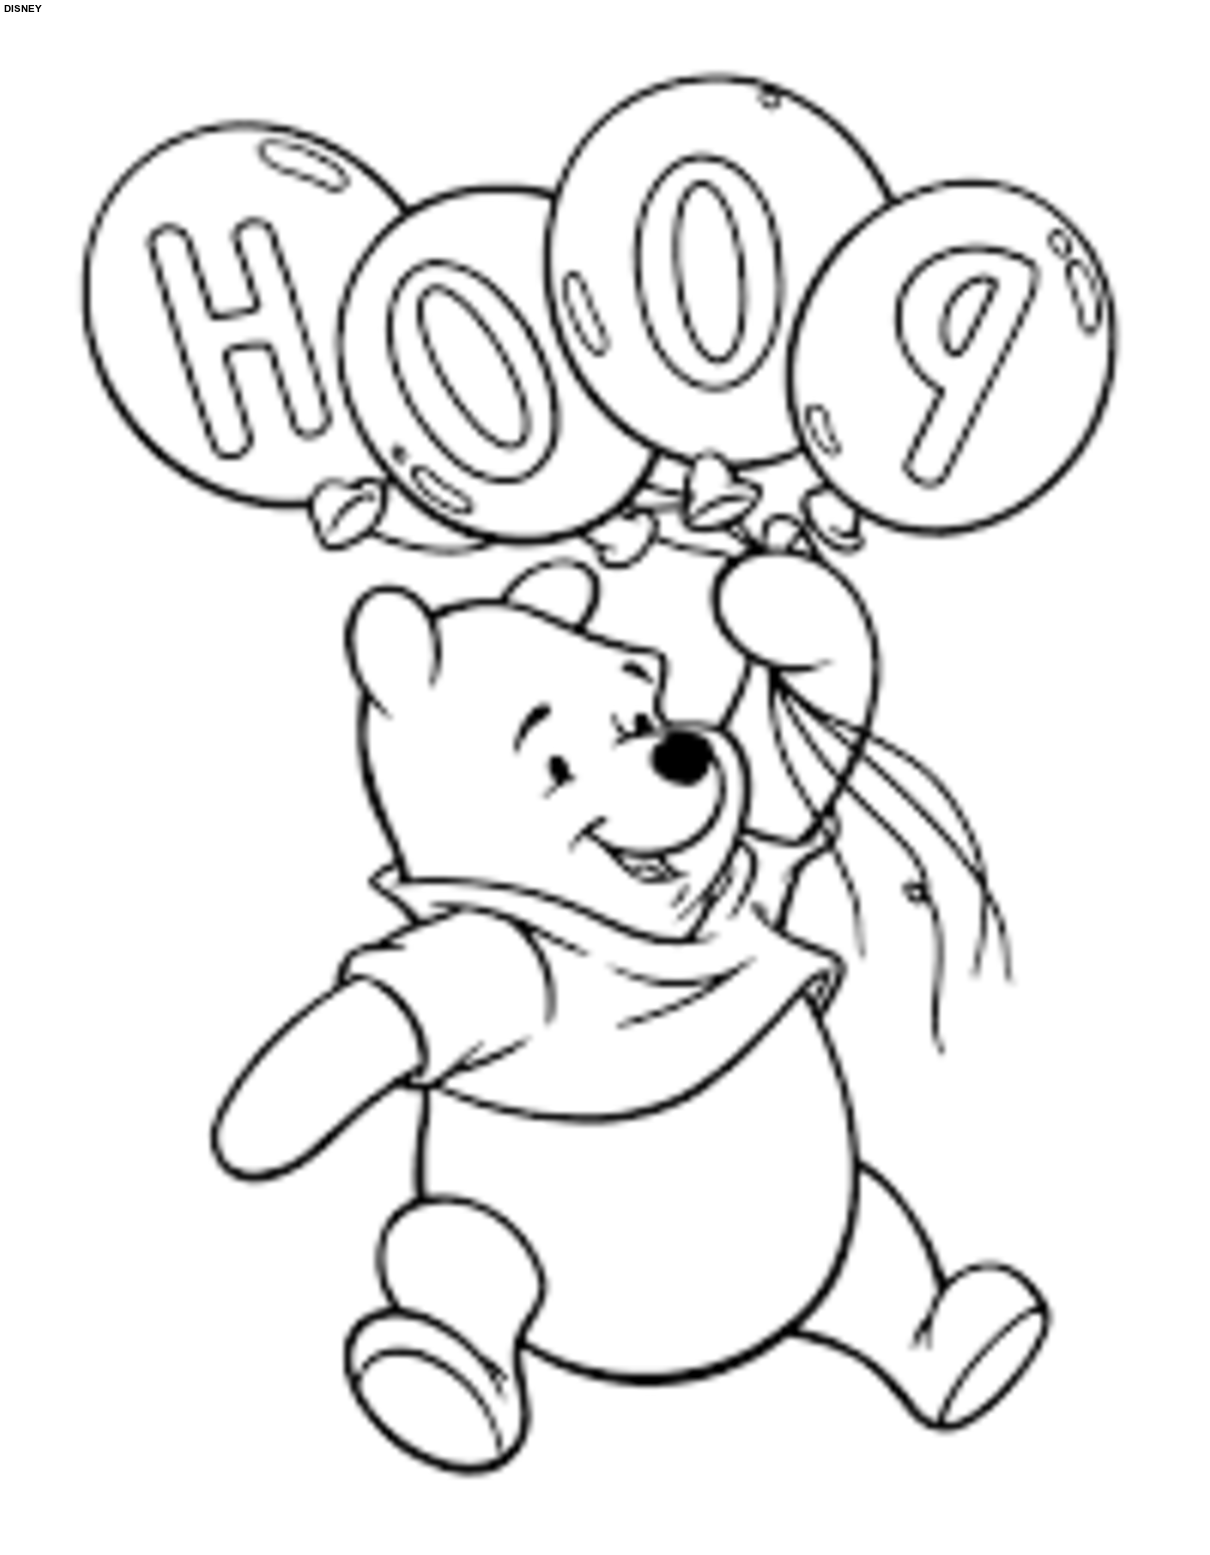 Disney Colouring Pages Cartoon Characters Coloring Pages For Boy And Girl